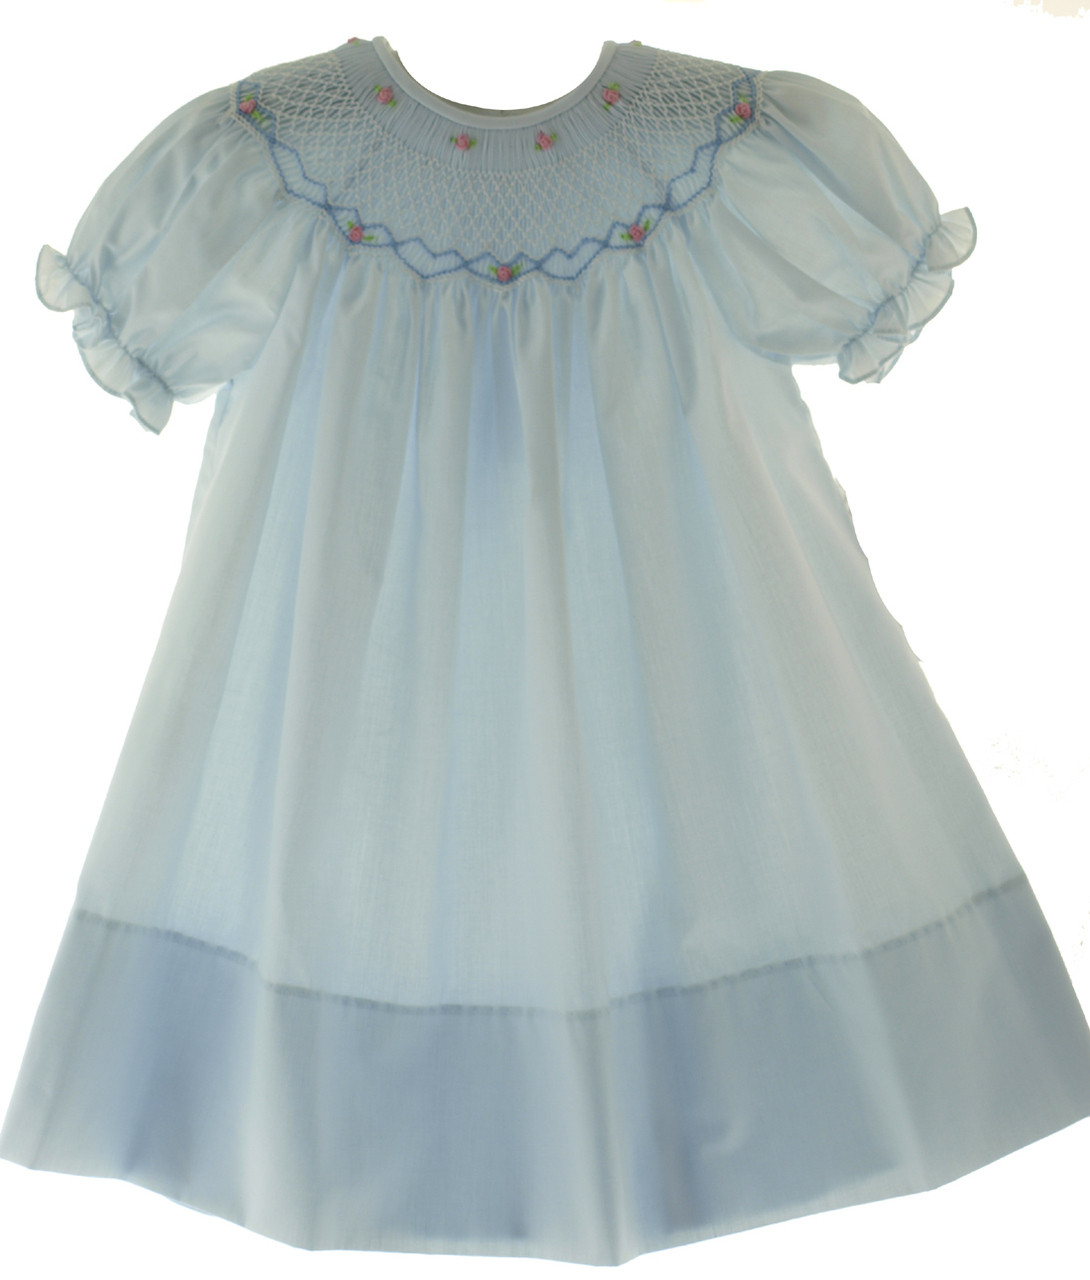 1bc056226959 Buy Girls Blue Smocked Bishop Dress with Pink Flowers by Rosalina